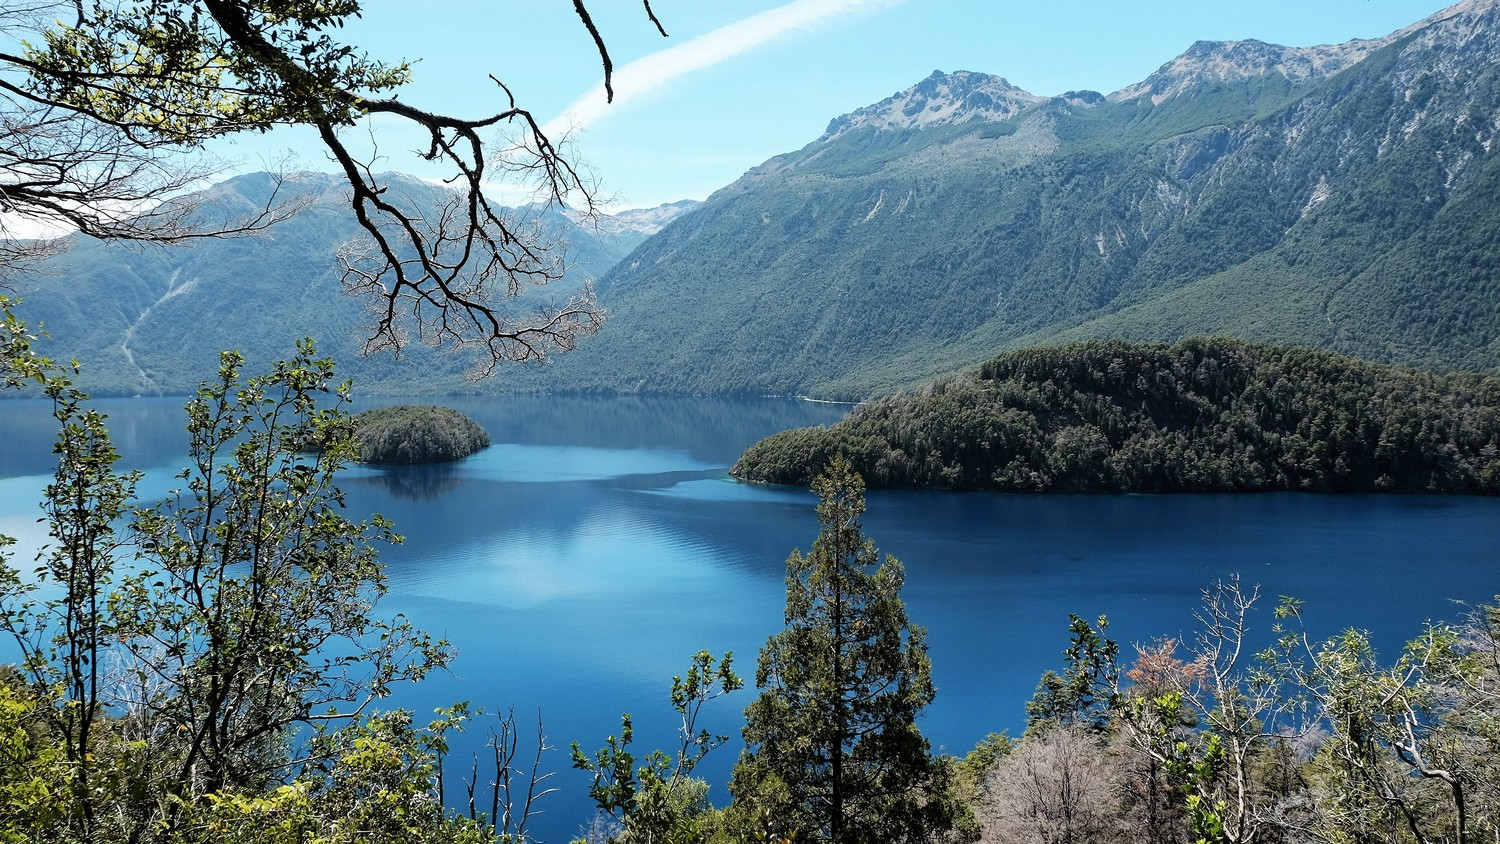 Lago-Azul-Lake-1500